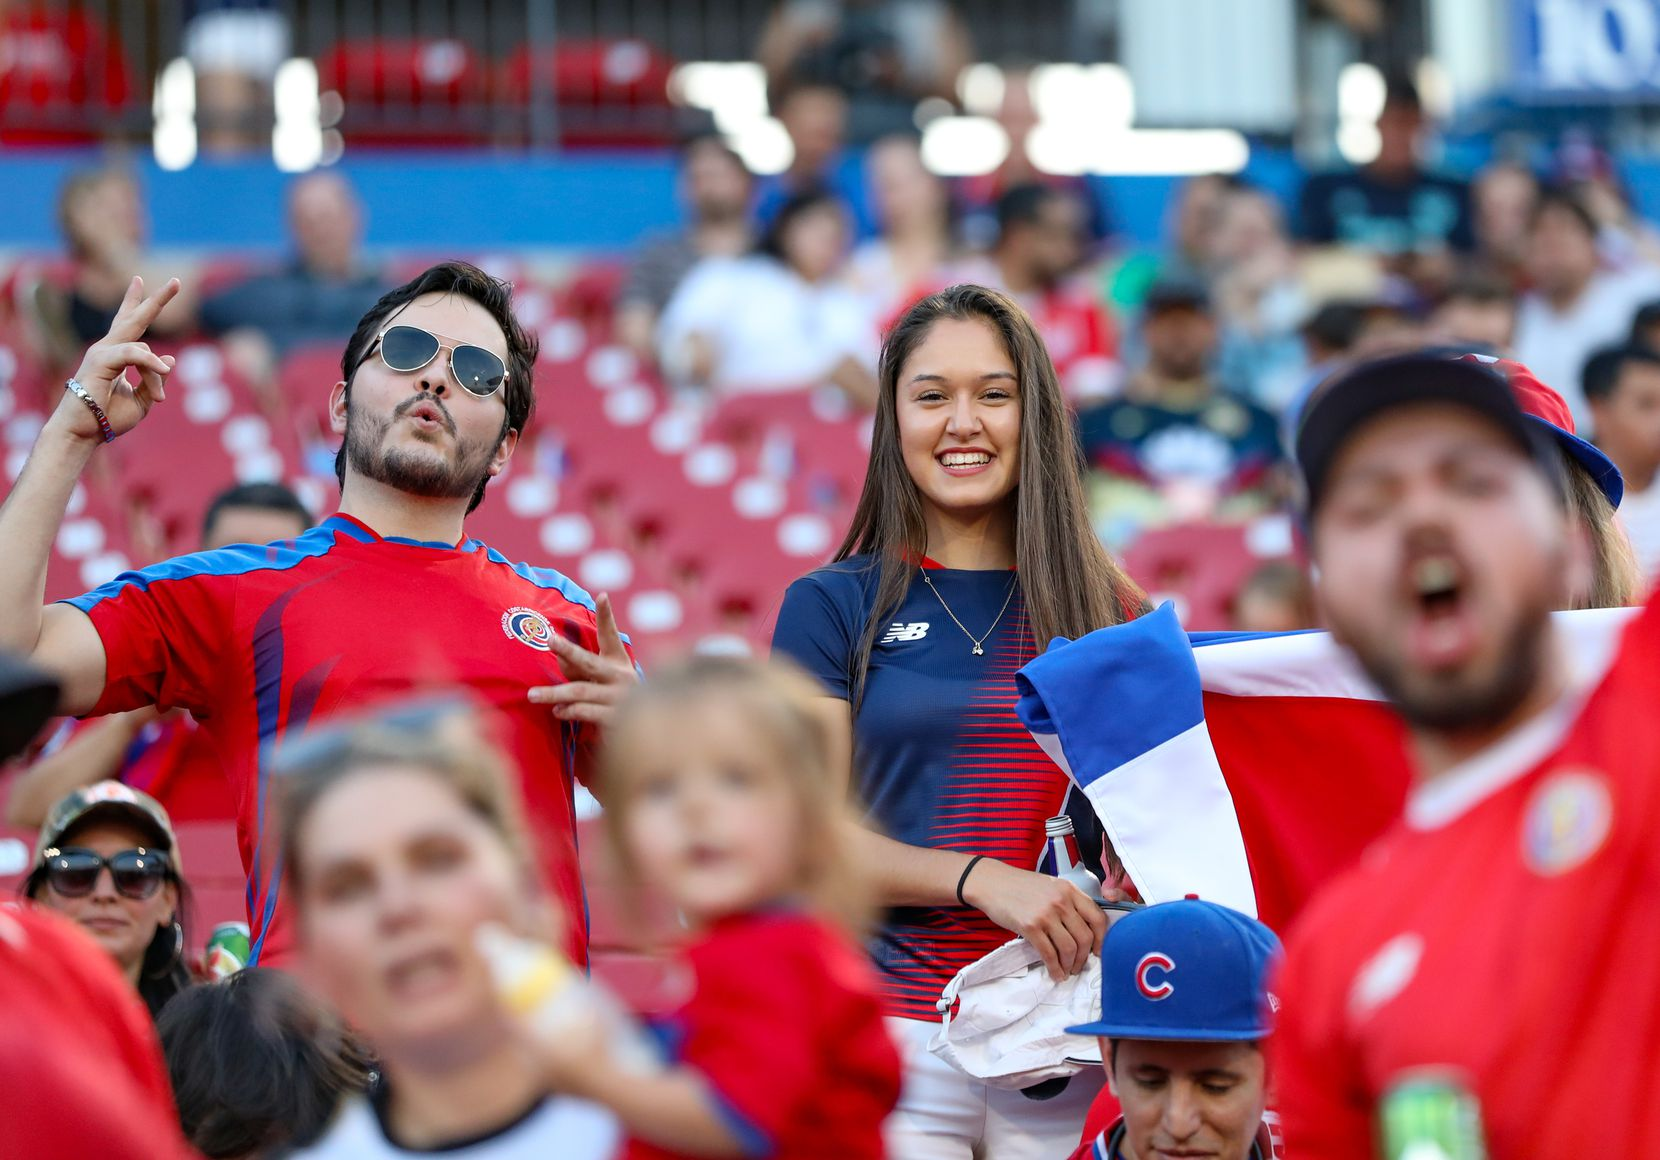 Costa Rica fans celebrate at the 2019 Gold Cup at Toyota Stadium. (6-20-19)